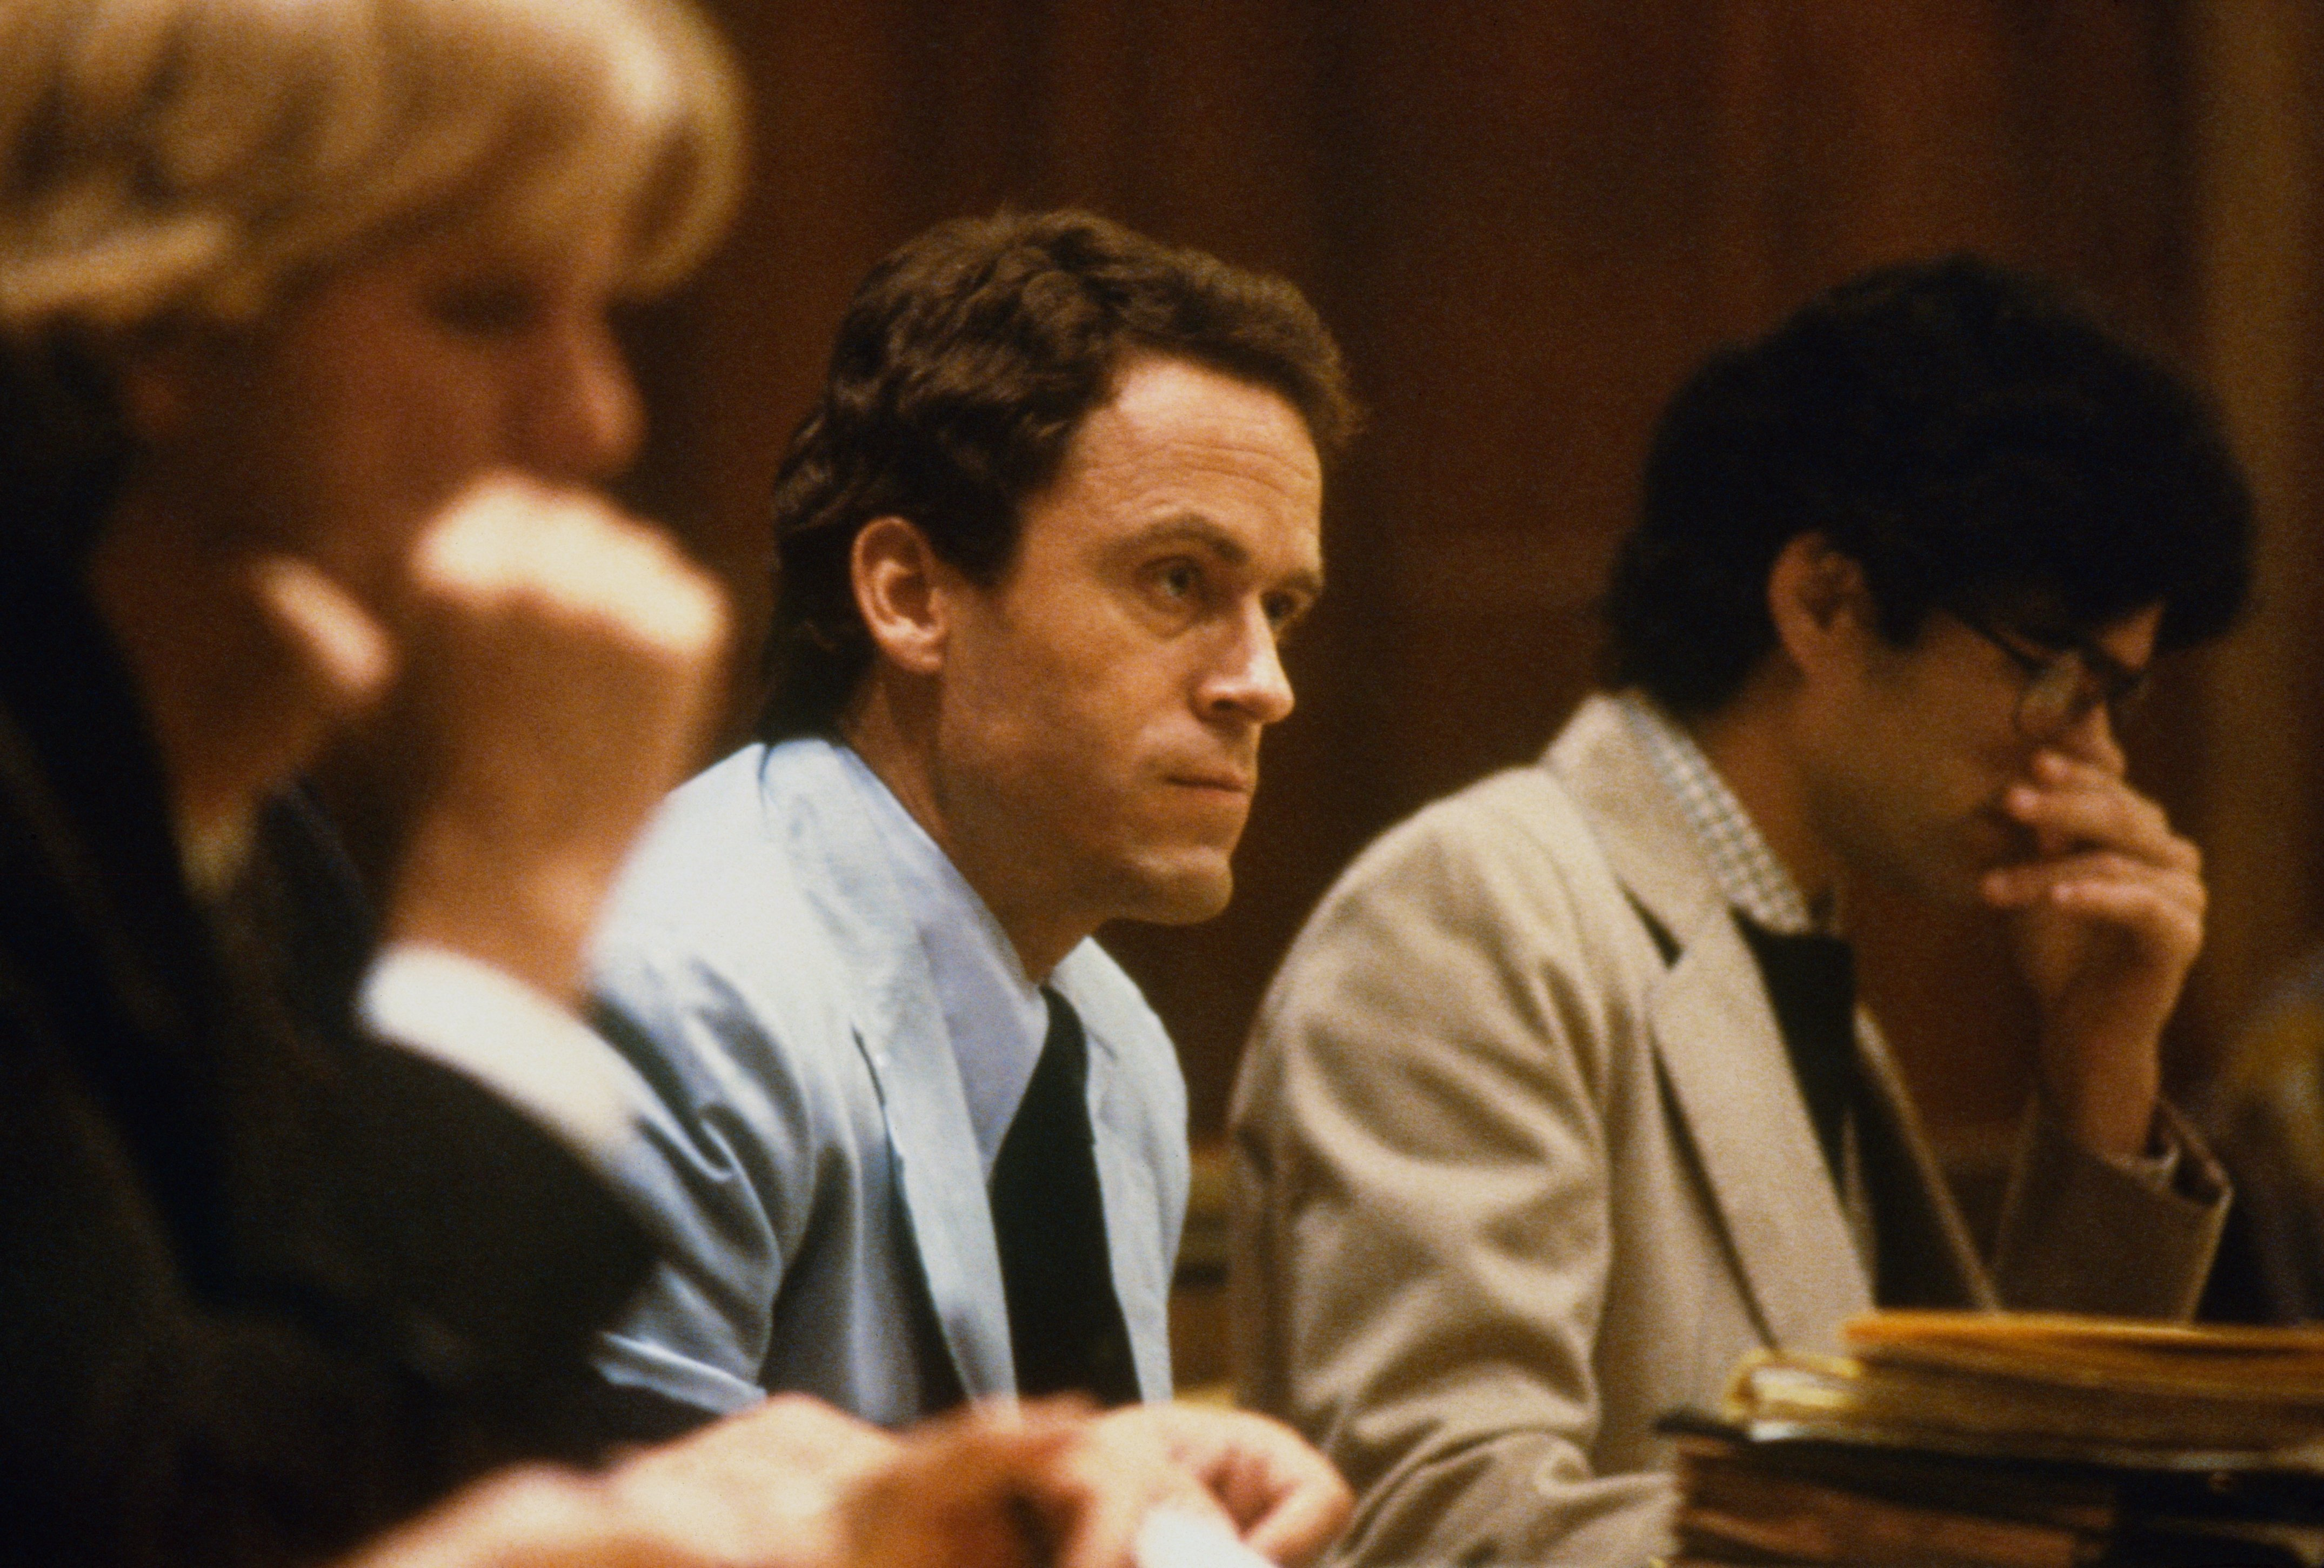 Theodore Bundy, seated in court, charged with the killings of two FSU coeds.| Source: Getty Images